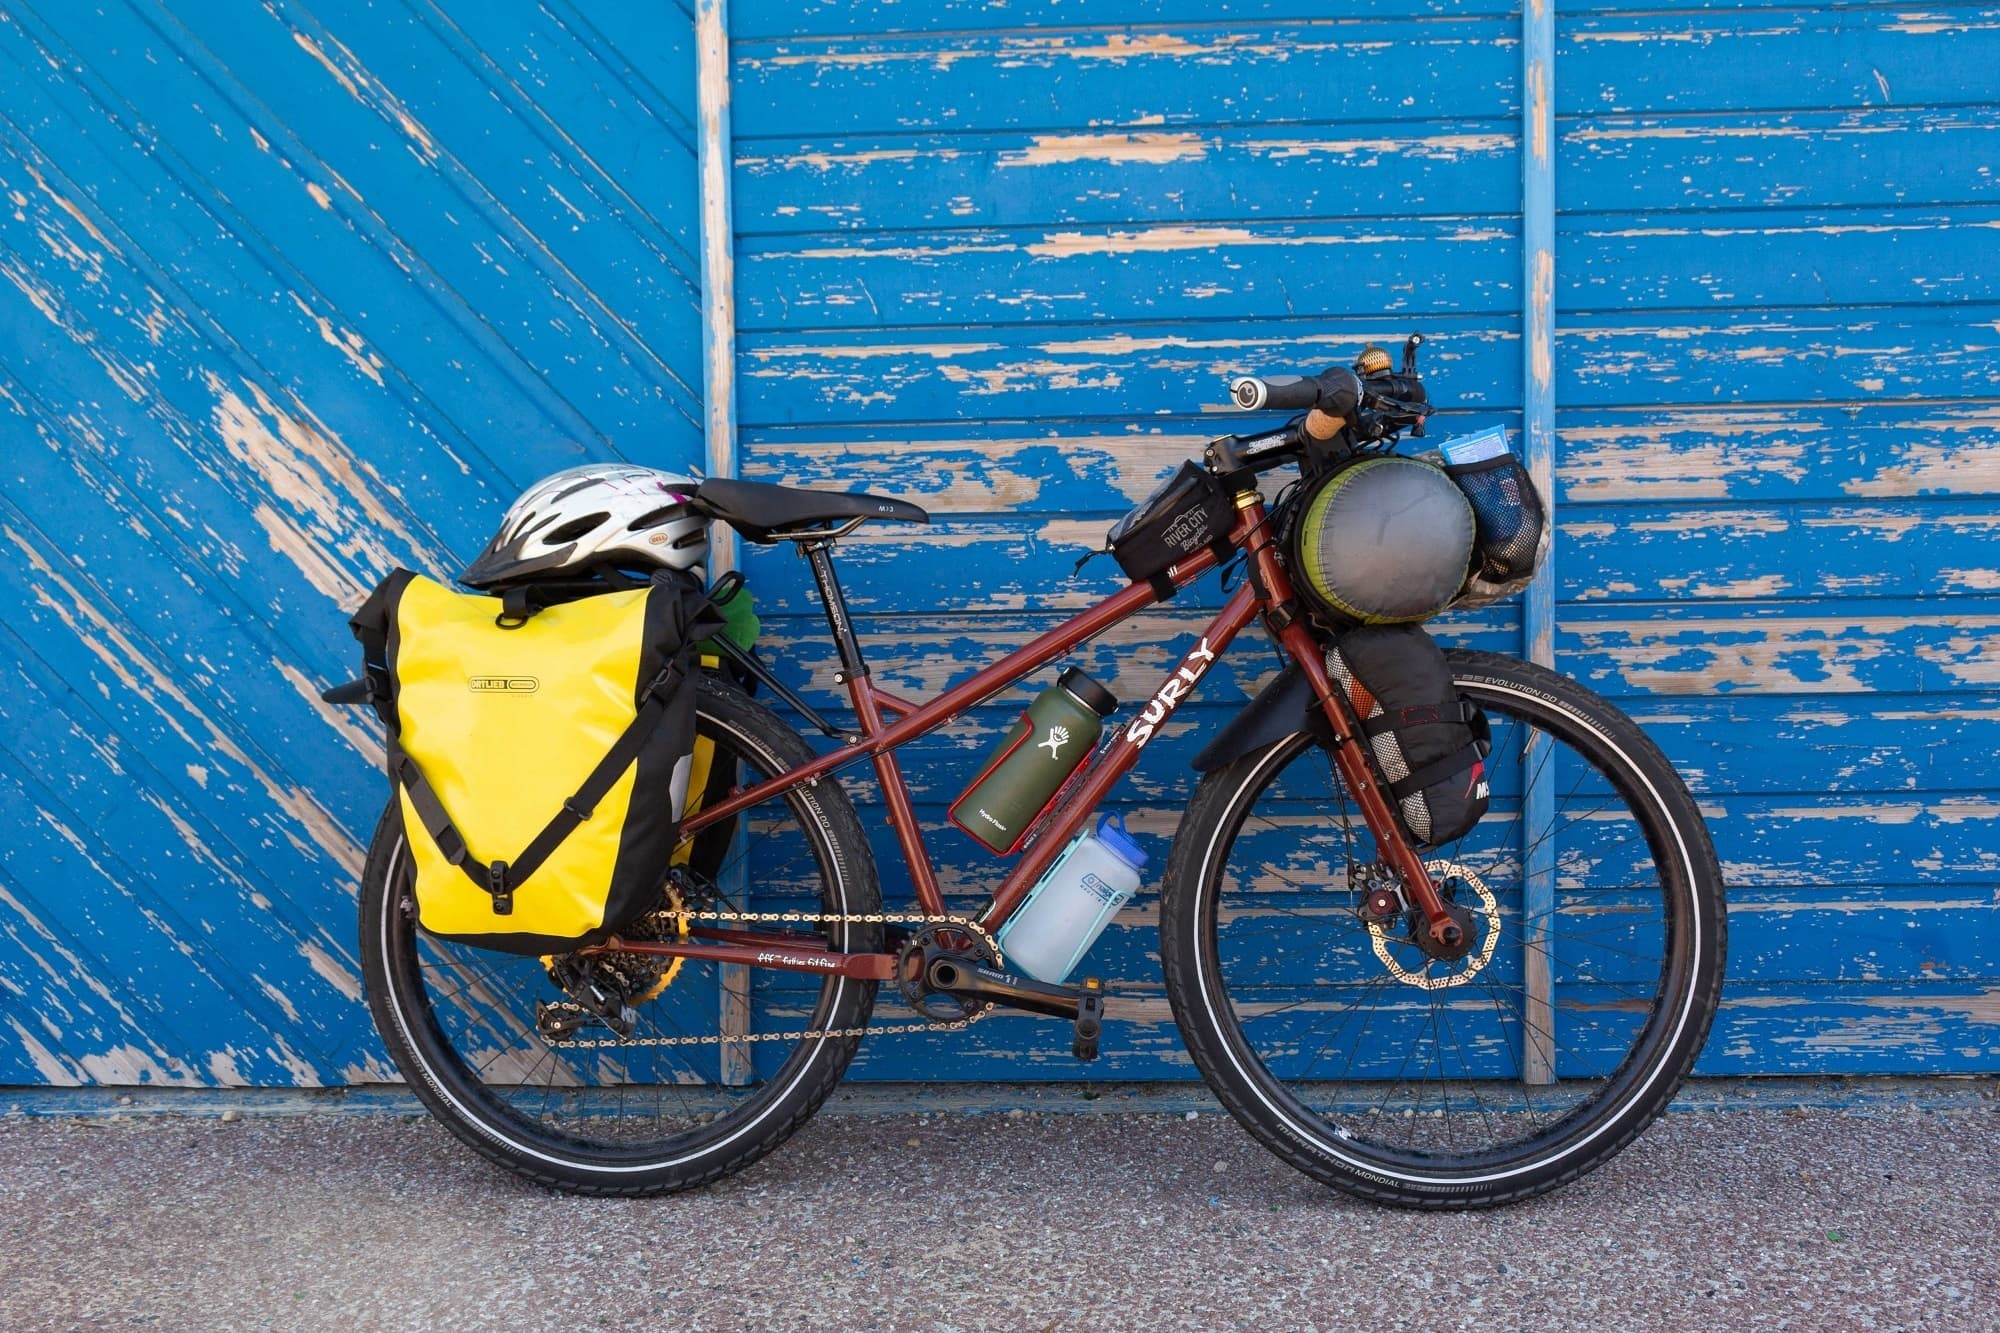 This guide will help you plan a bike touring trip in France on the Velodyssee Atlantic cycling route with tips on bike transport, gear, camping & more.